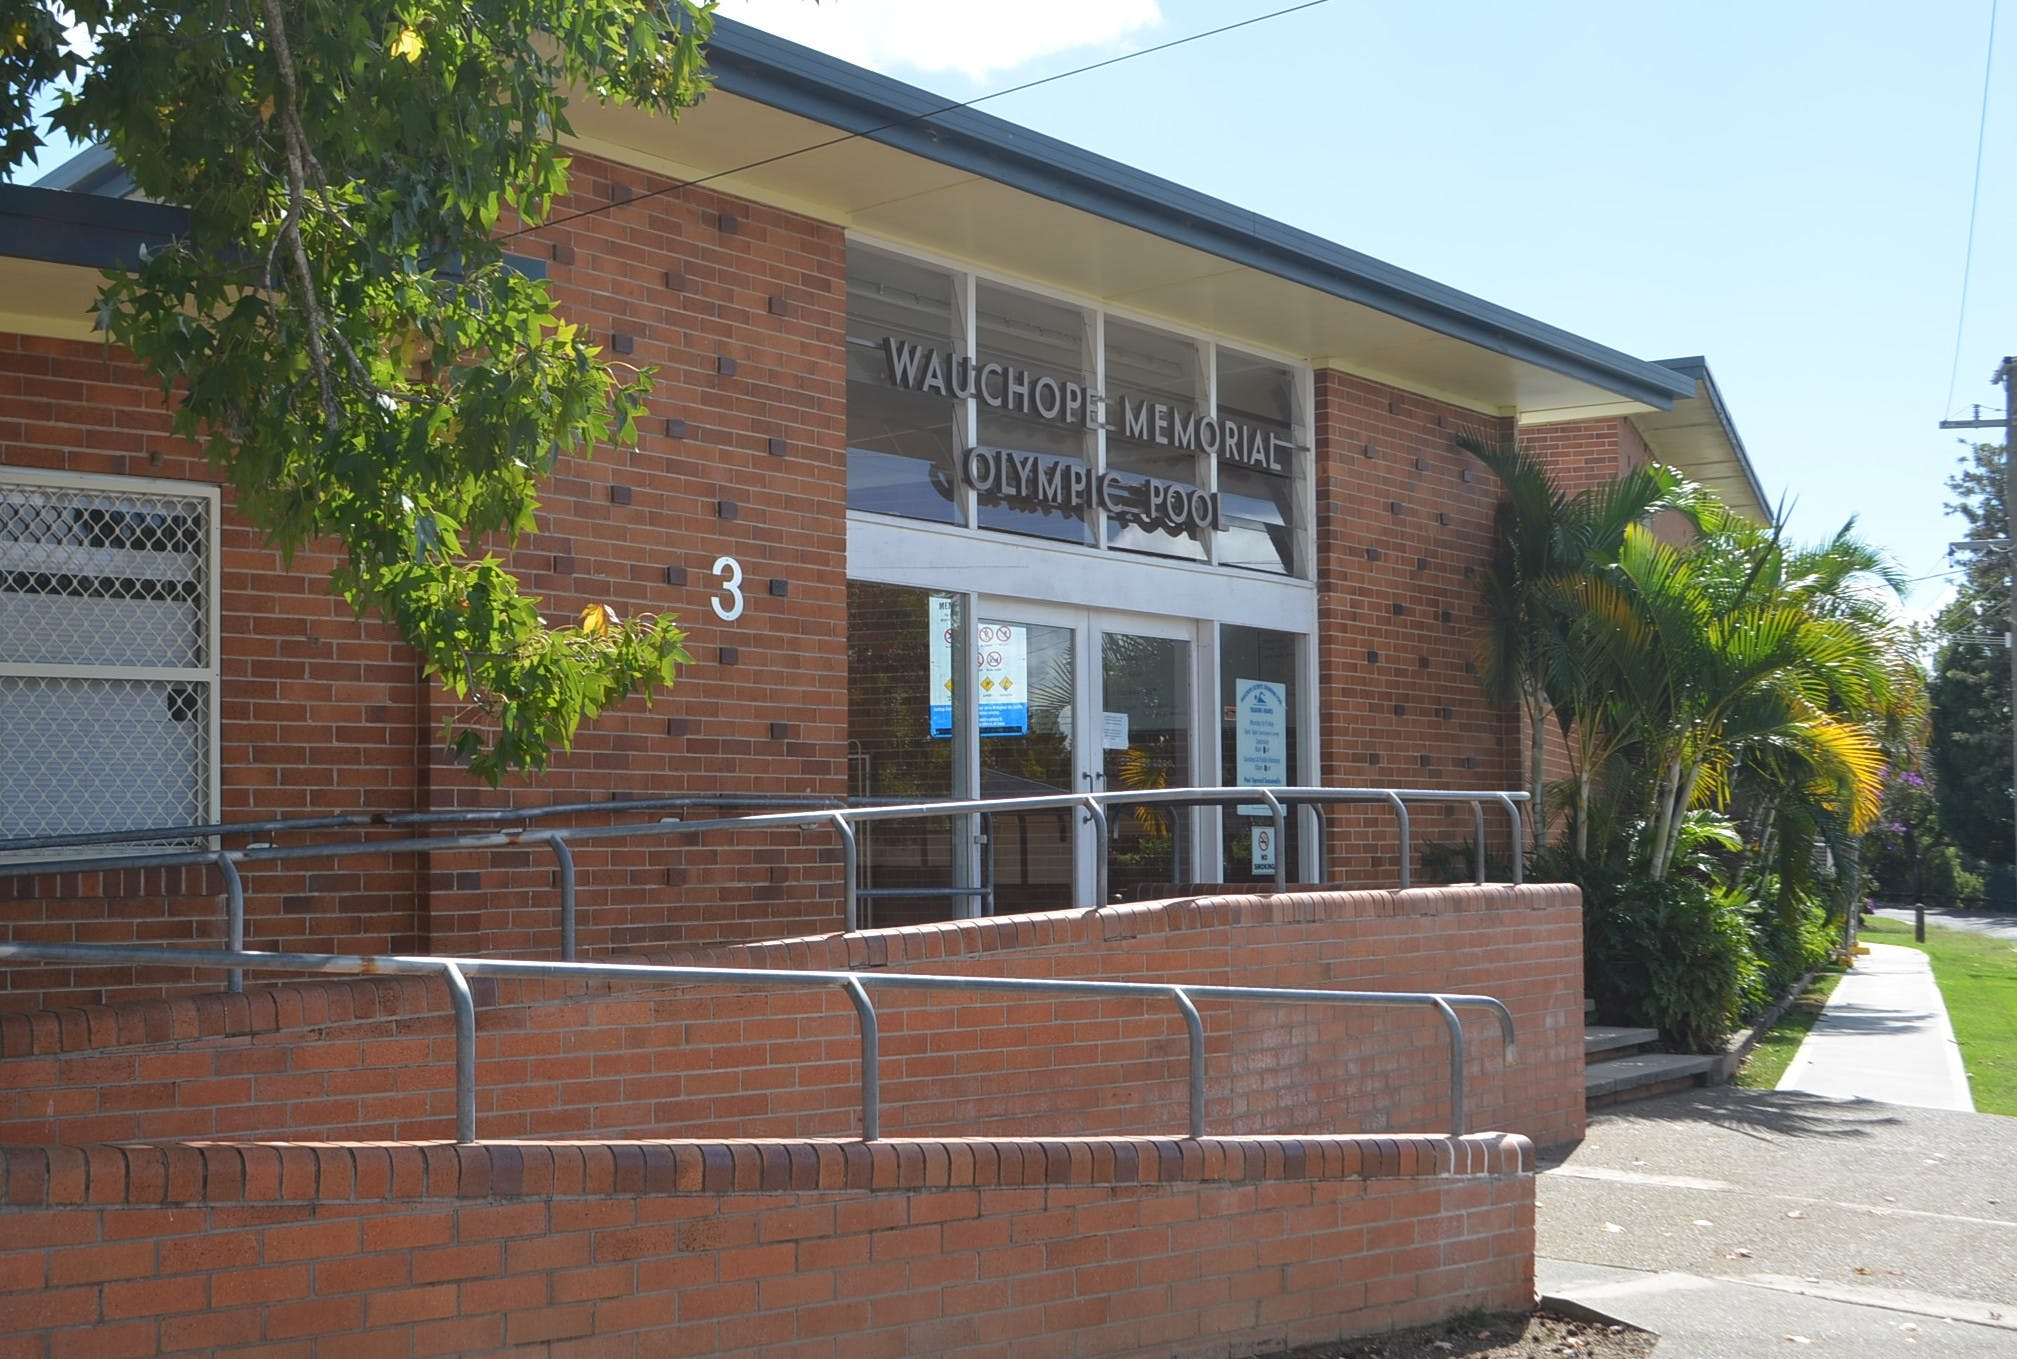 Council 39 s plans and budget for 2016 2017 port - Nsw government swimming pool register ...